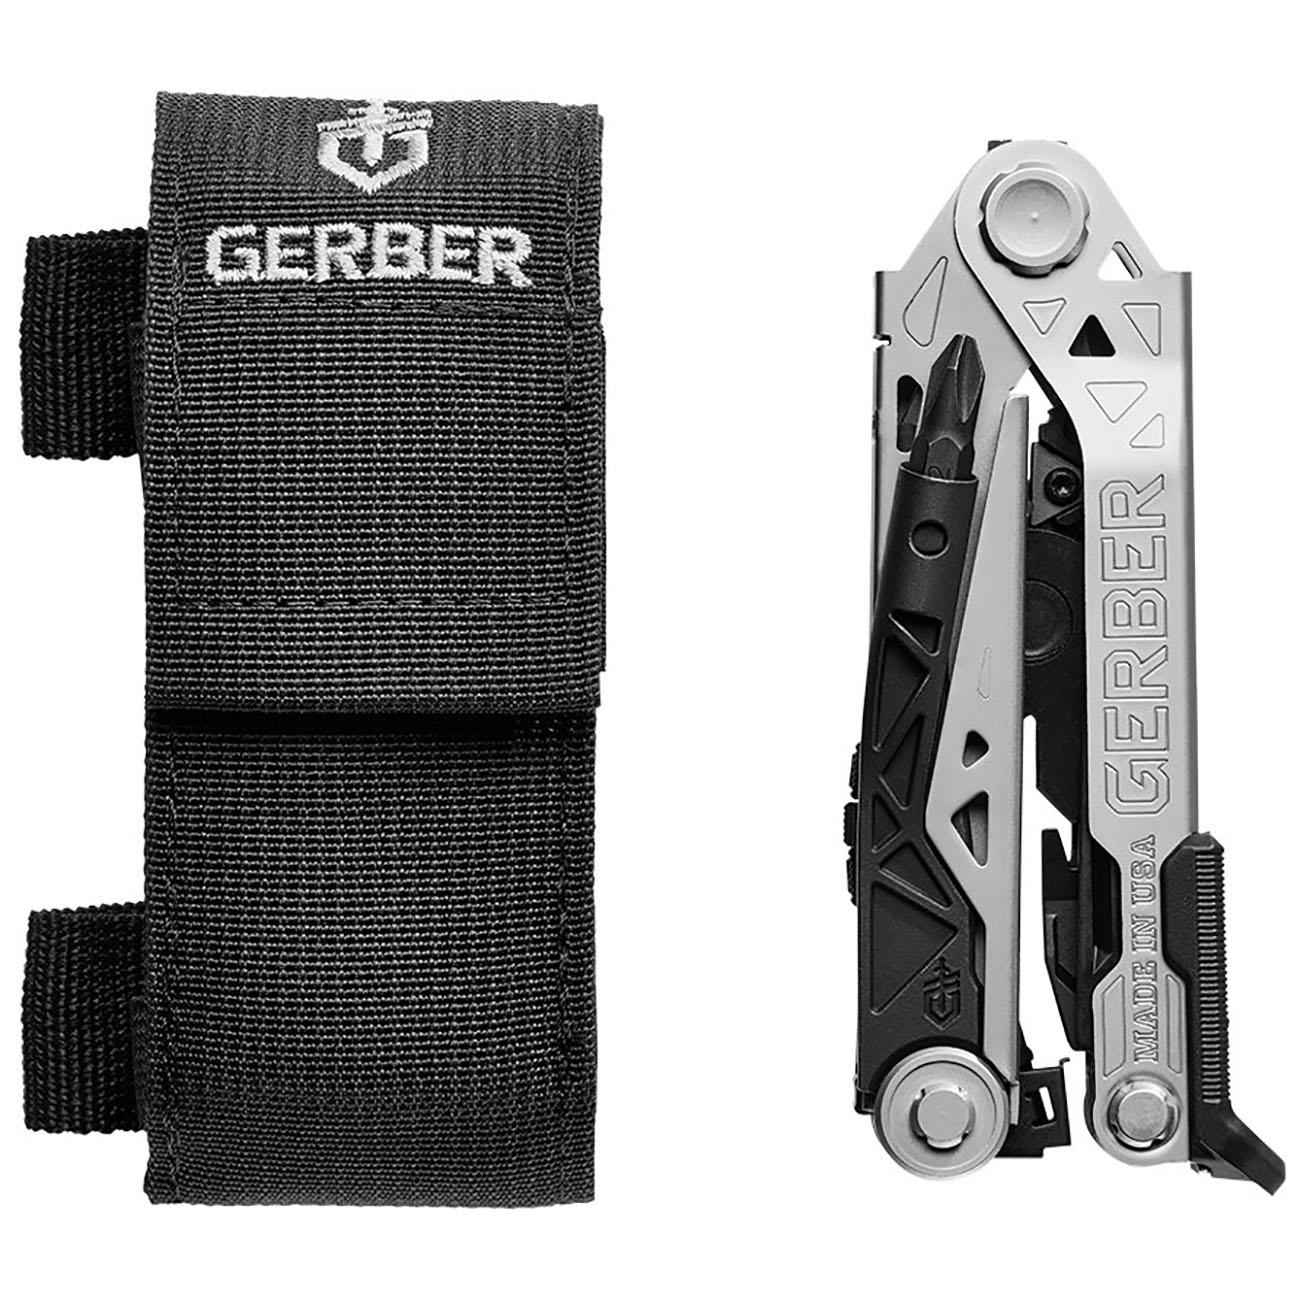 Gerber Center-Drive Multi-Tool with Sheath